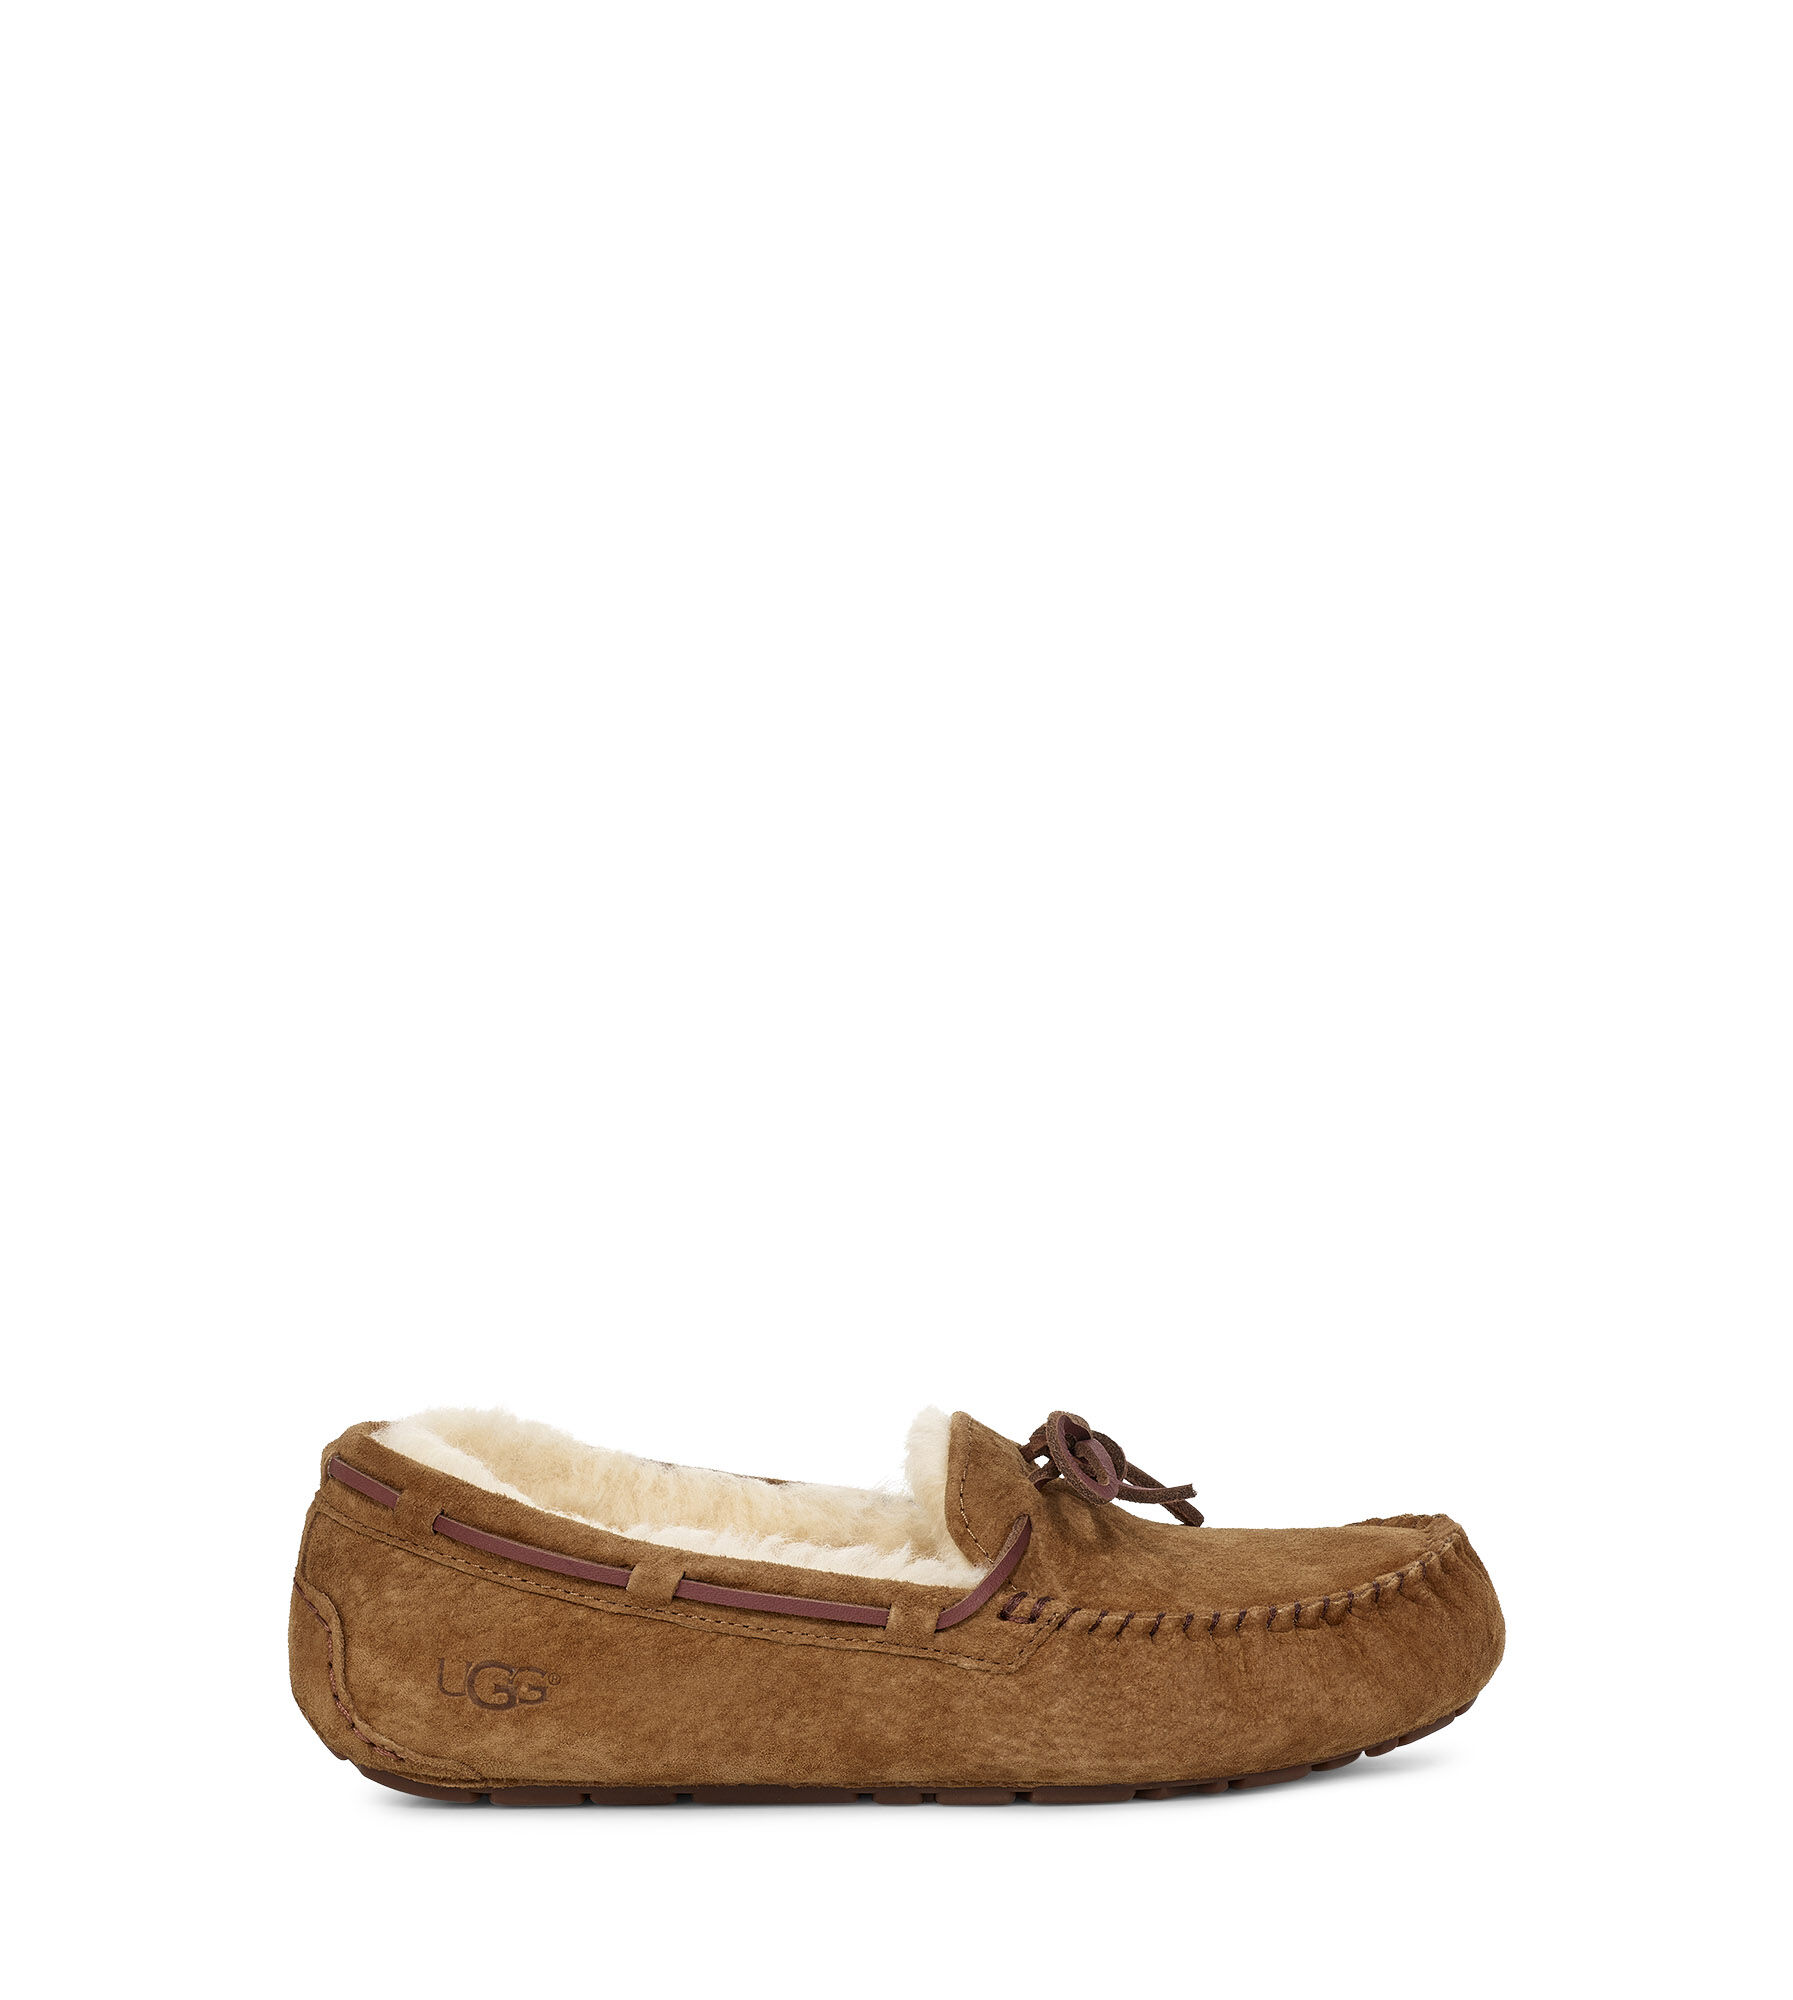 ugg® official | women's slippers collection | free shipping